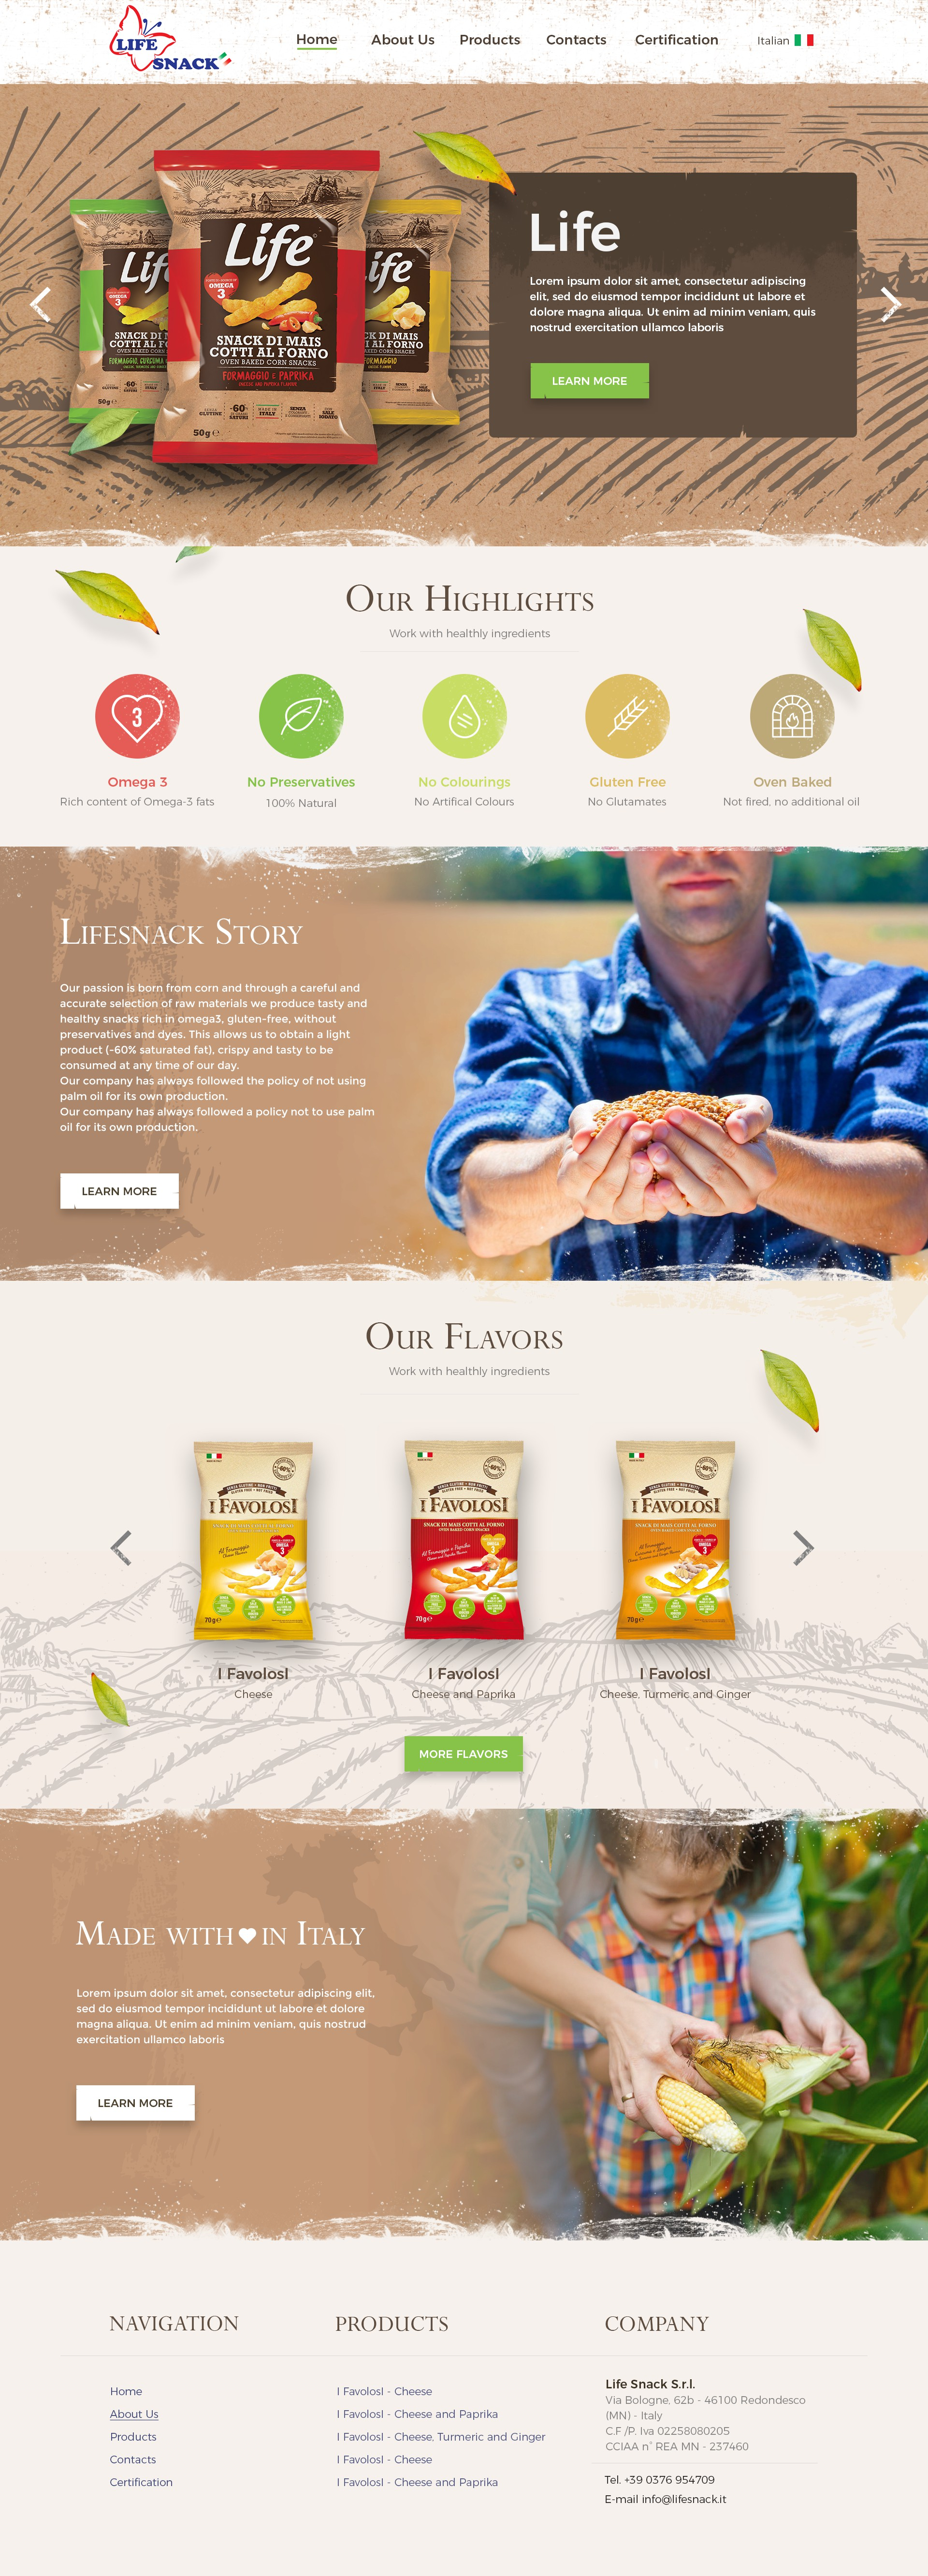 Life Snack - a website for an healthy lifestyle